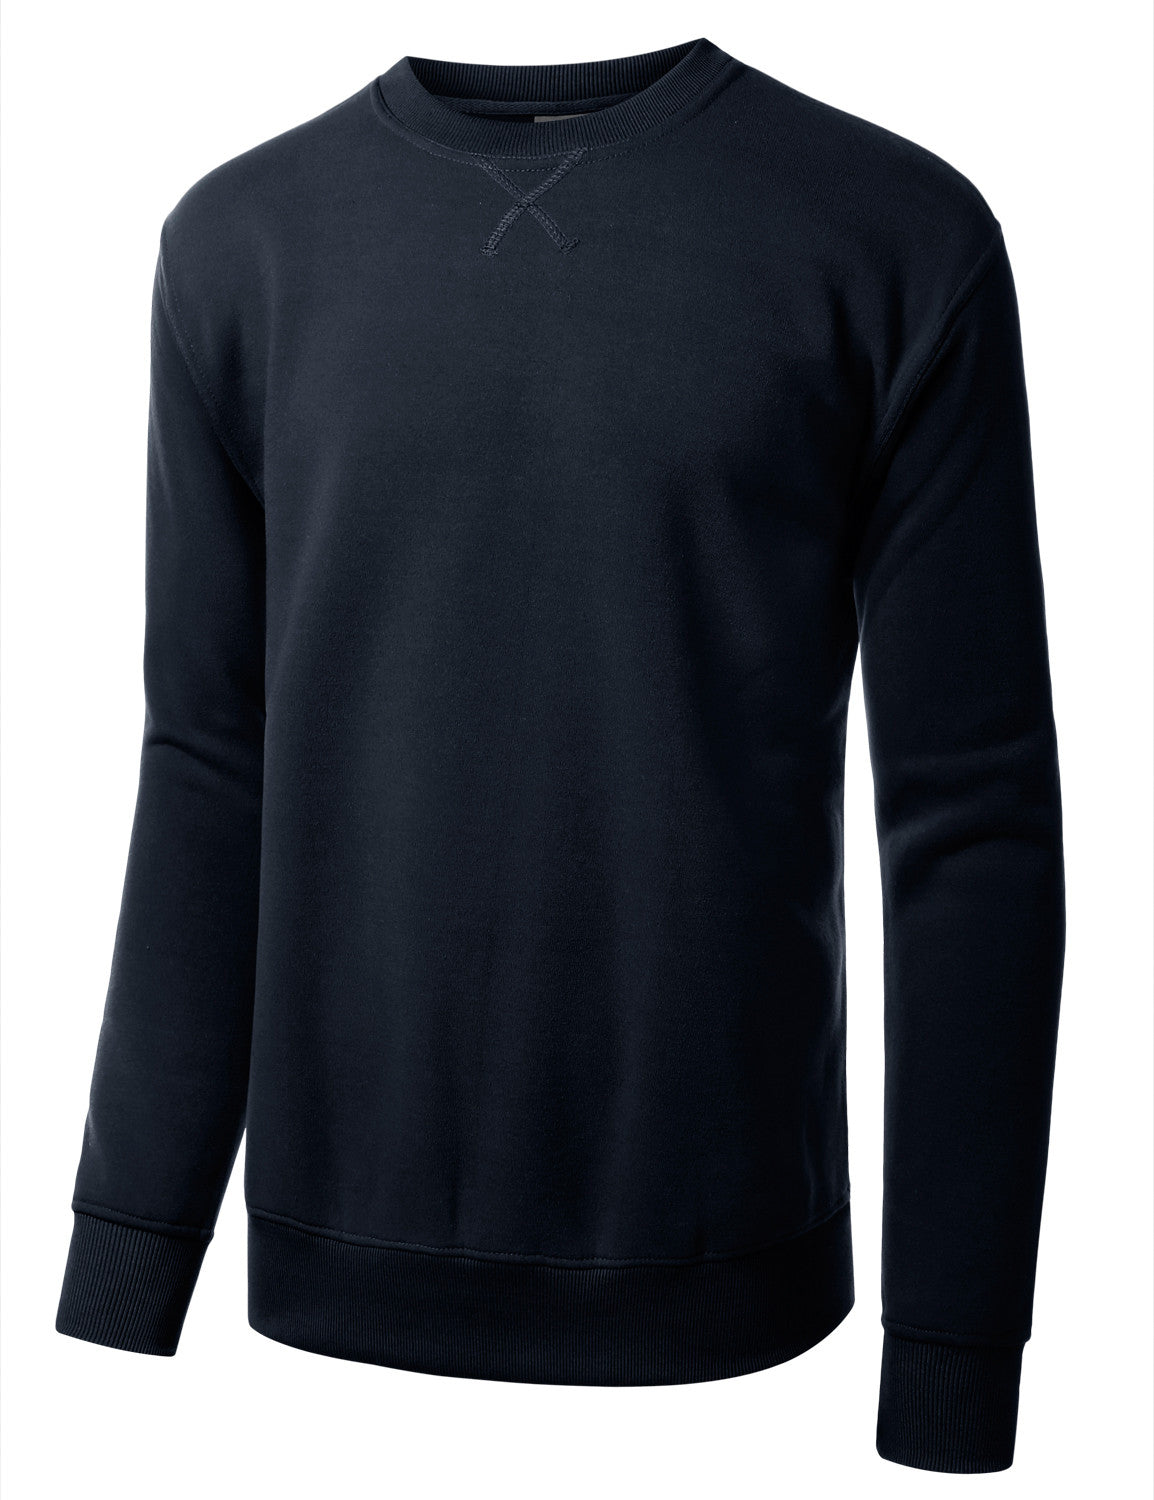 NAVY Basic Crewneck Sweatshirt-Various Colors - URBANCREWS